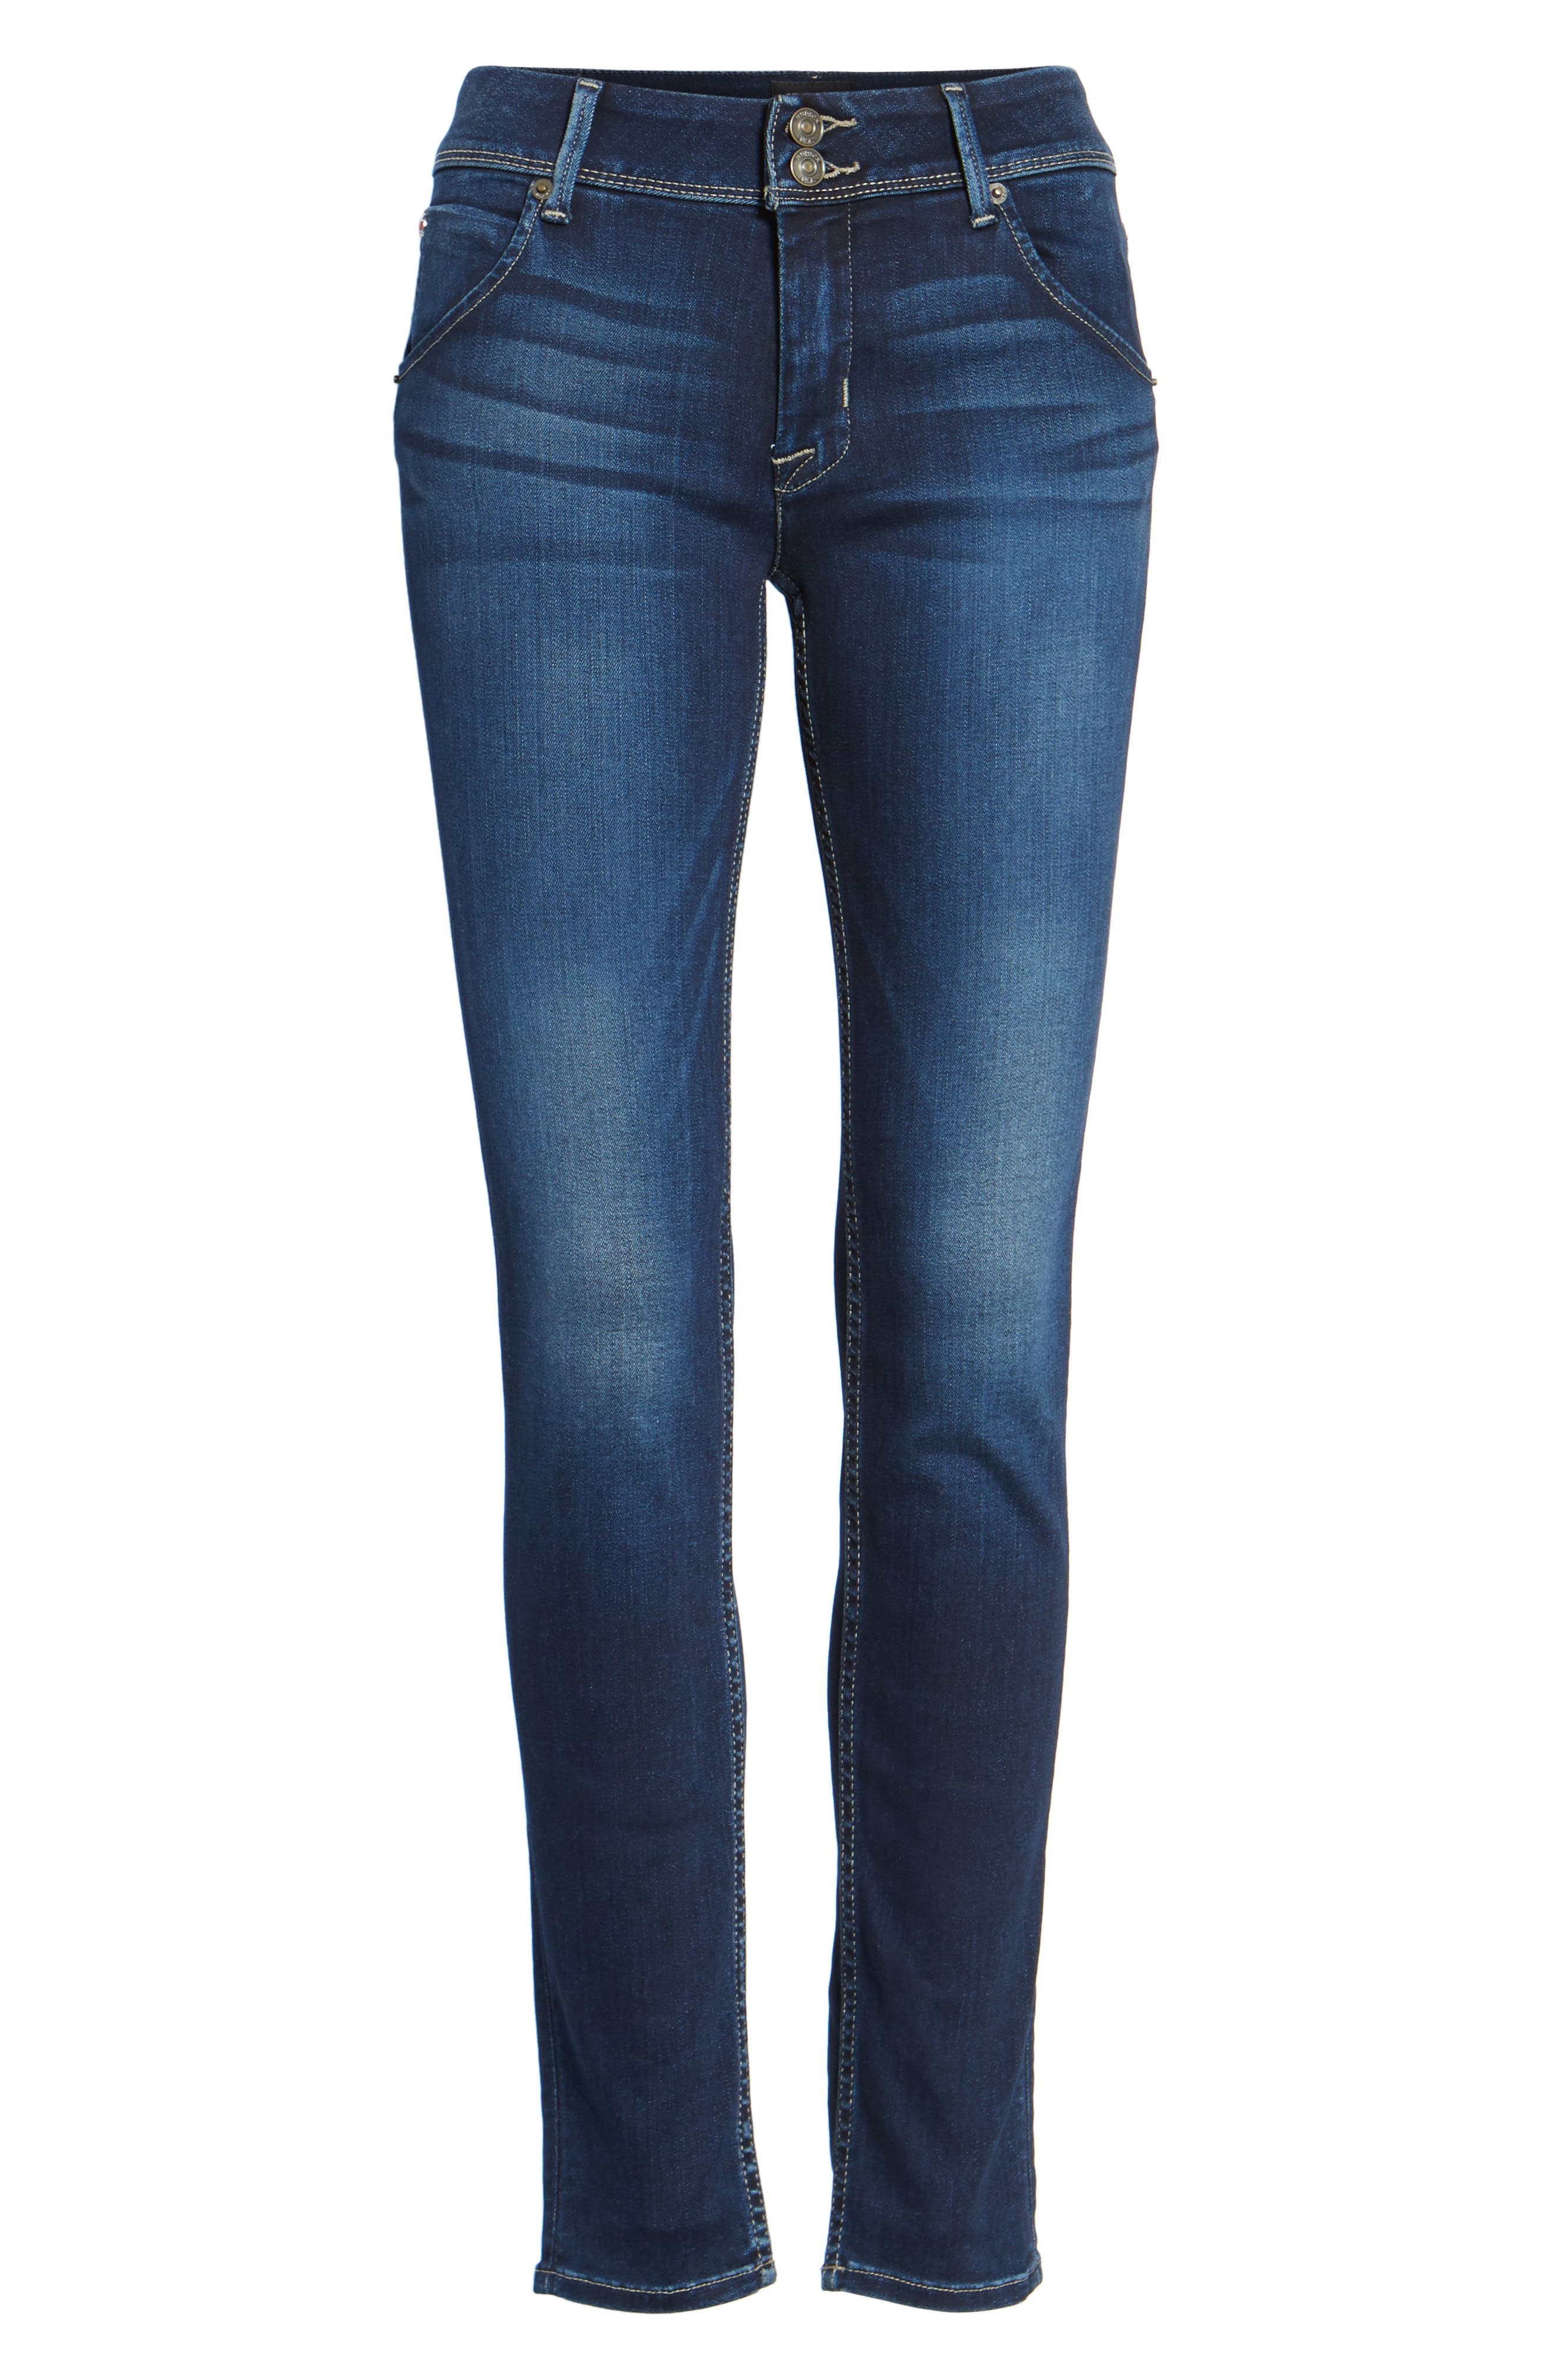 'Elysian - Collin' Mid Rise Skinny Jeans,                         Main,                         color, 402